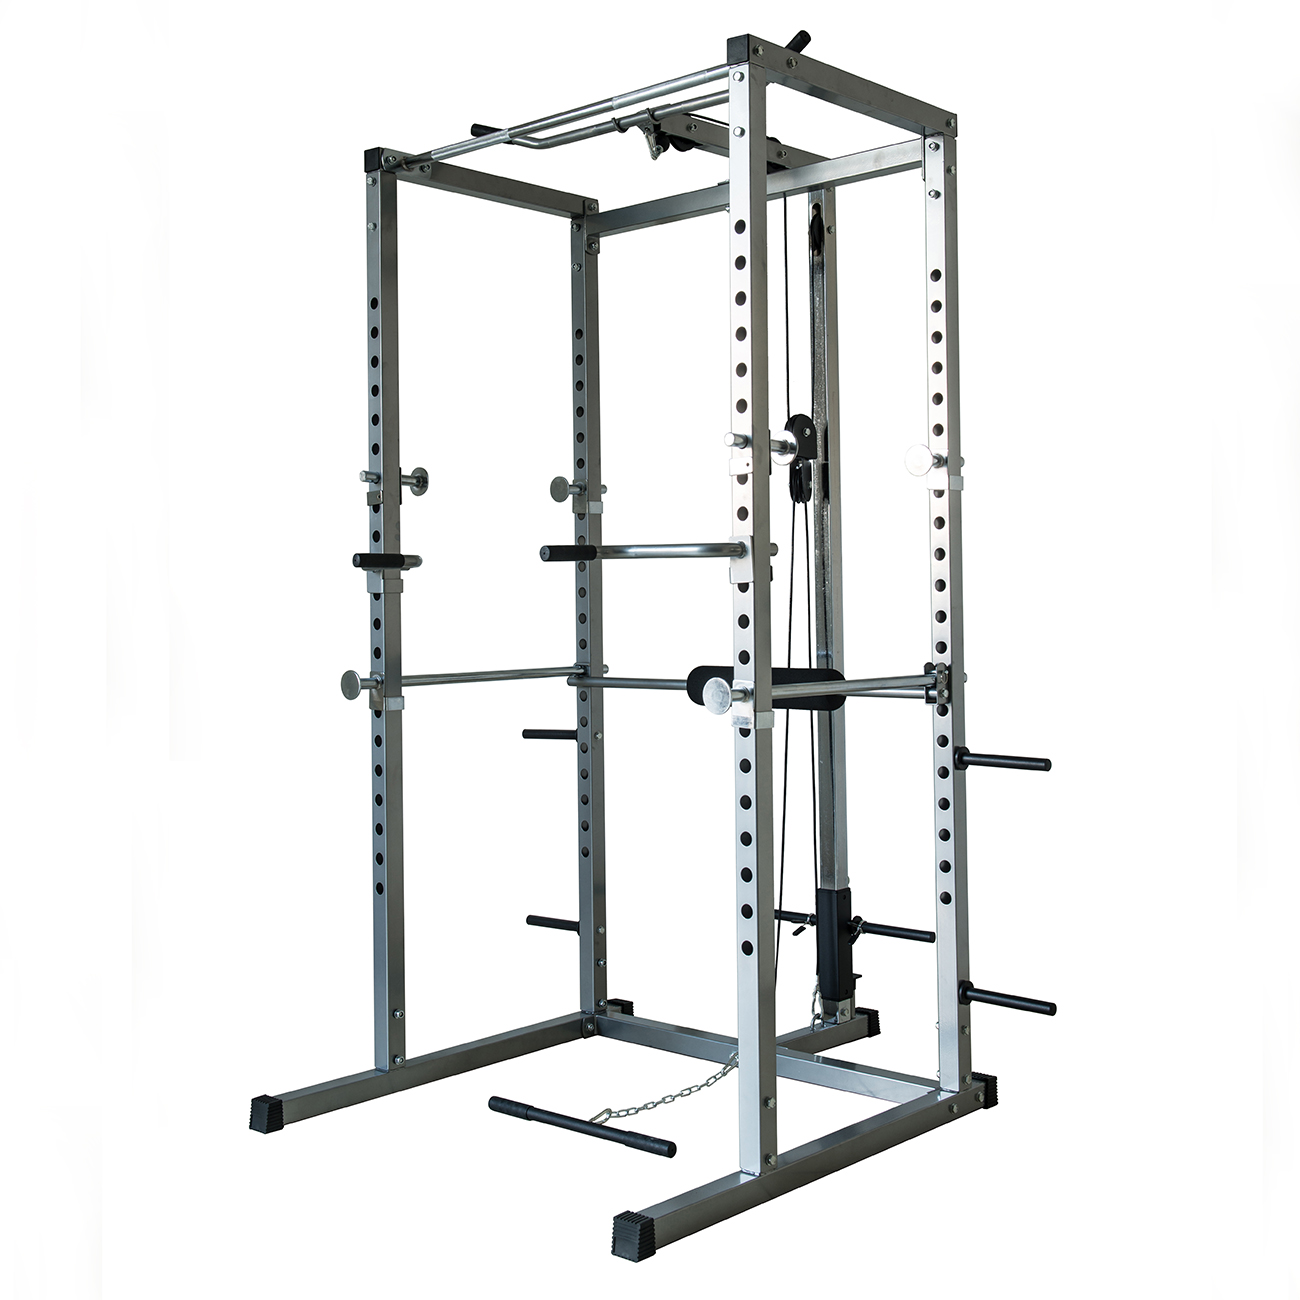 Akonza Athletics Fitness Power Rack with Lat Pull Attachm...